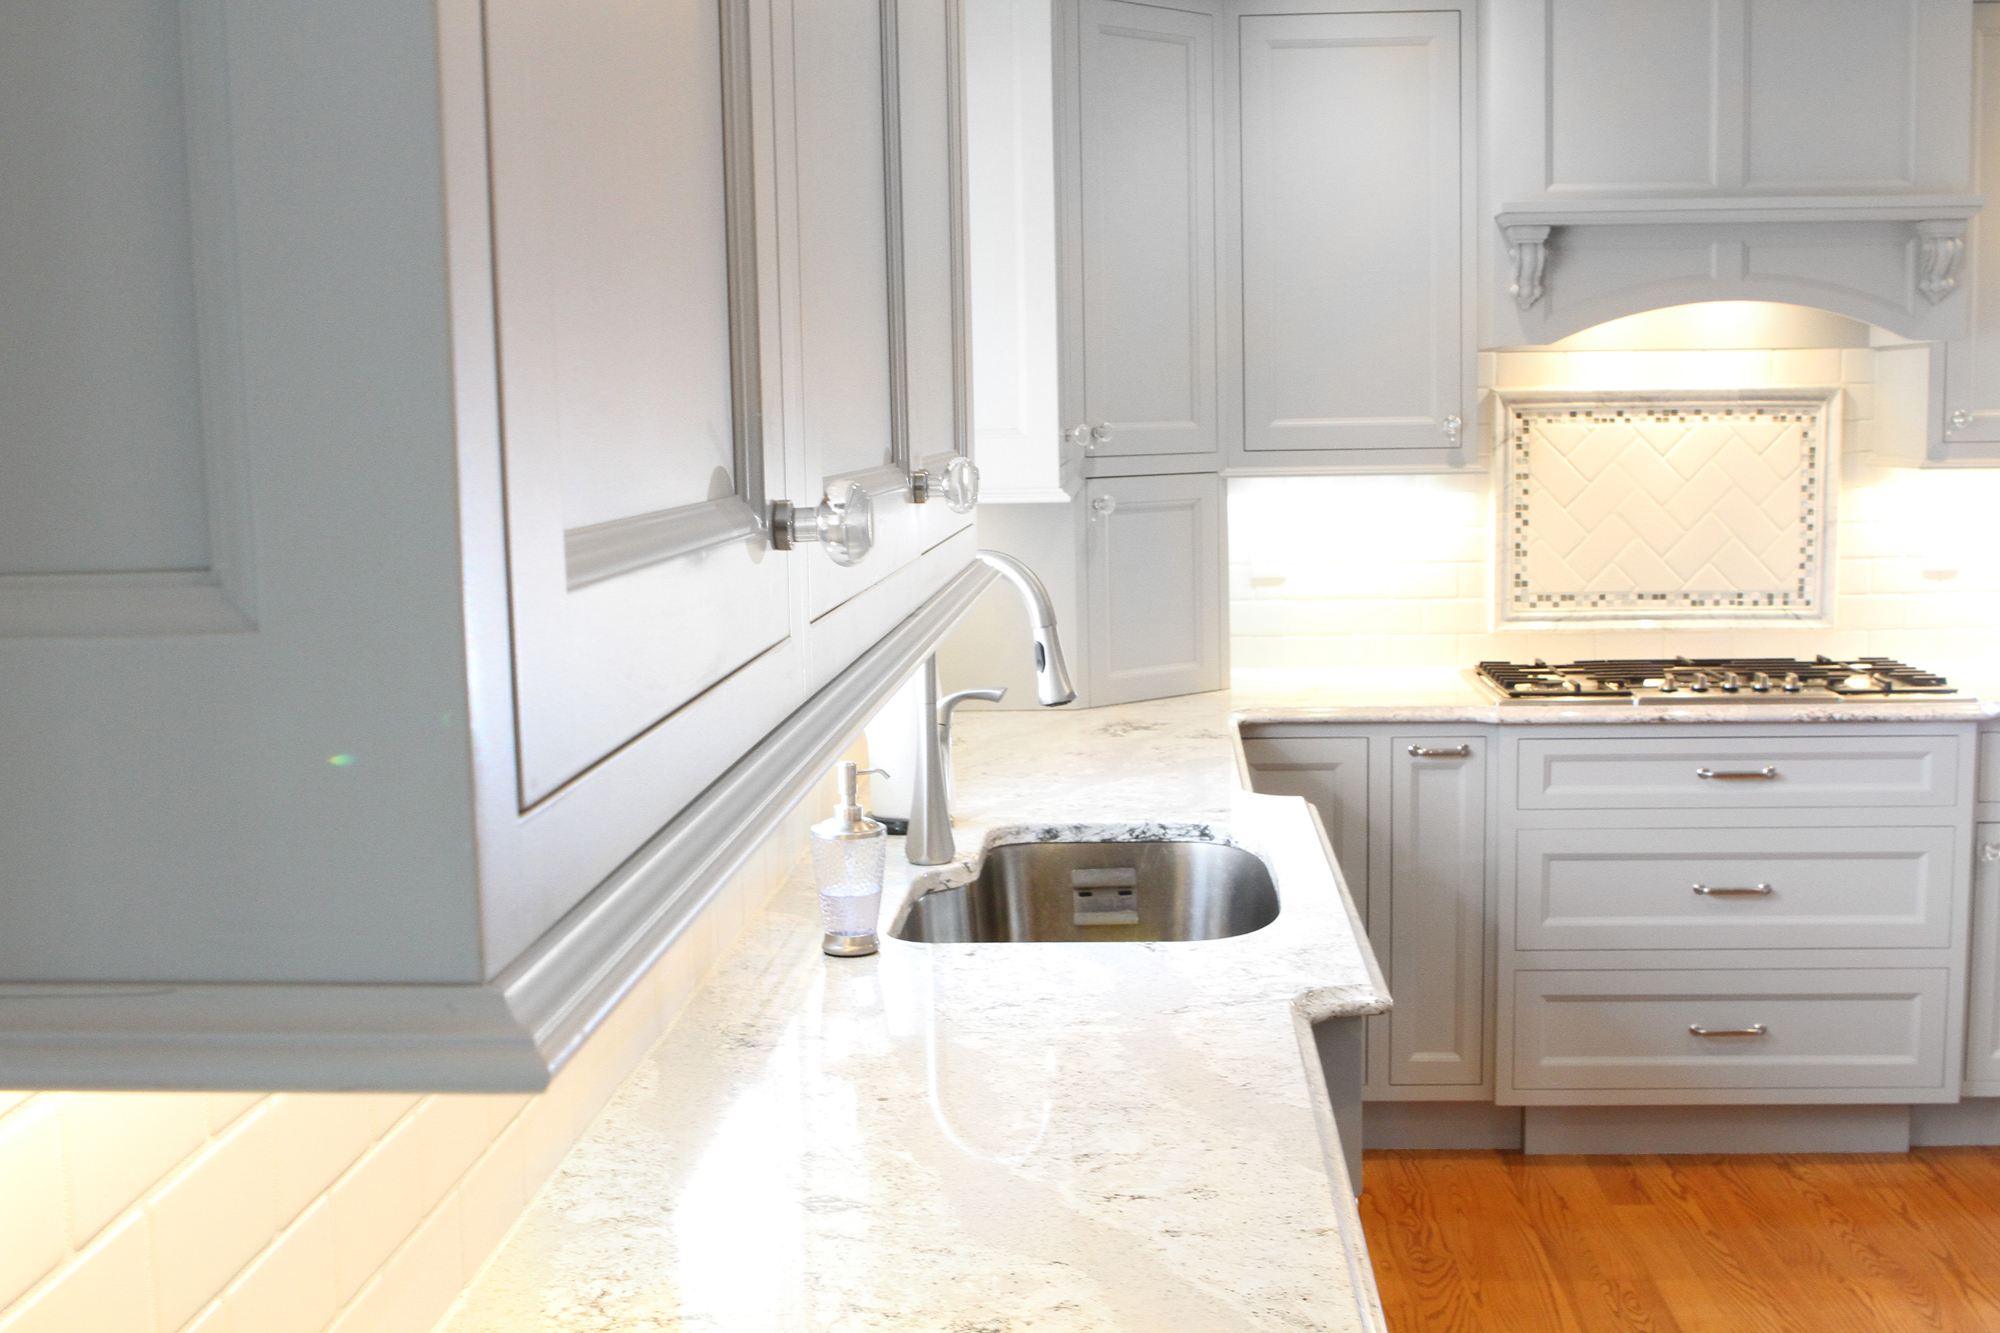 kitchen and bath remodel chairs zilly project design